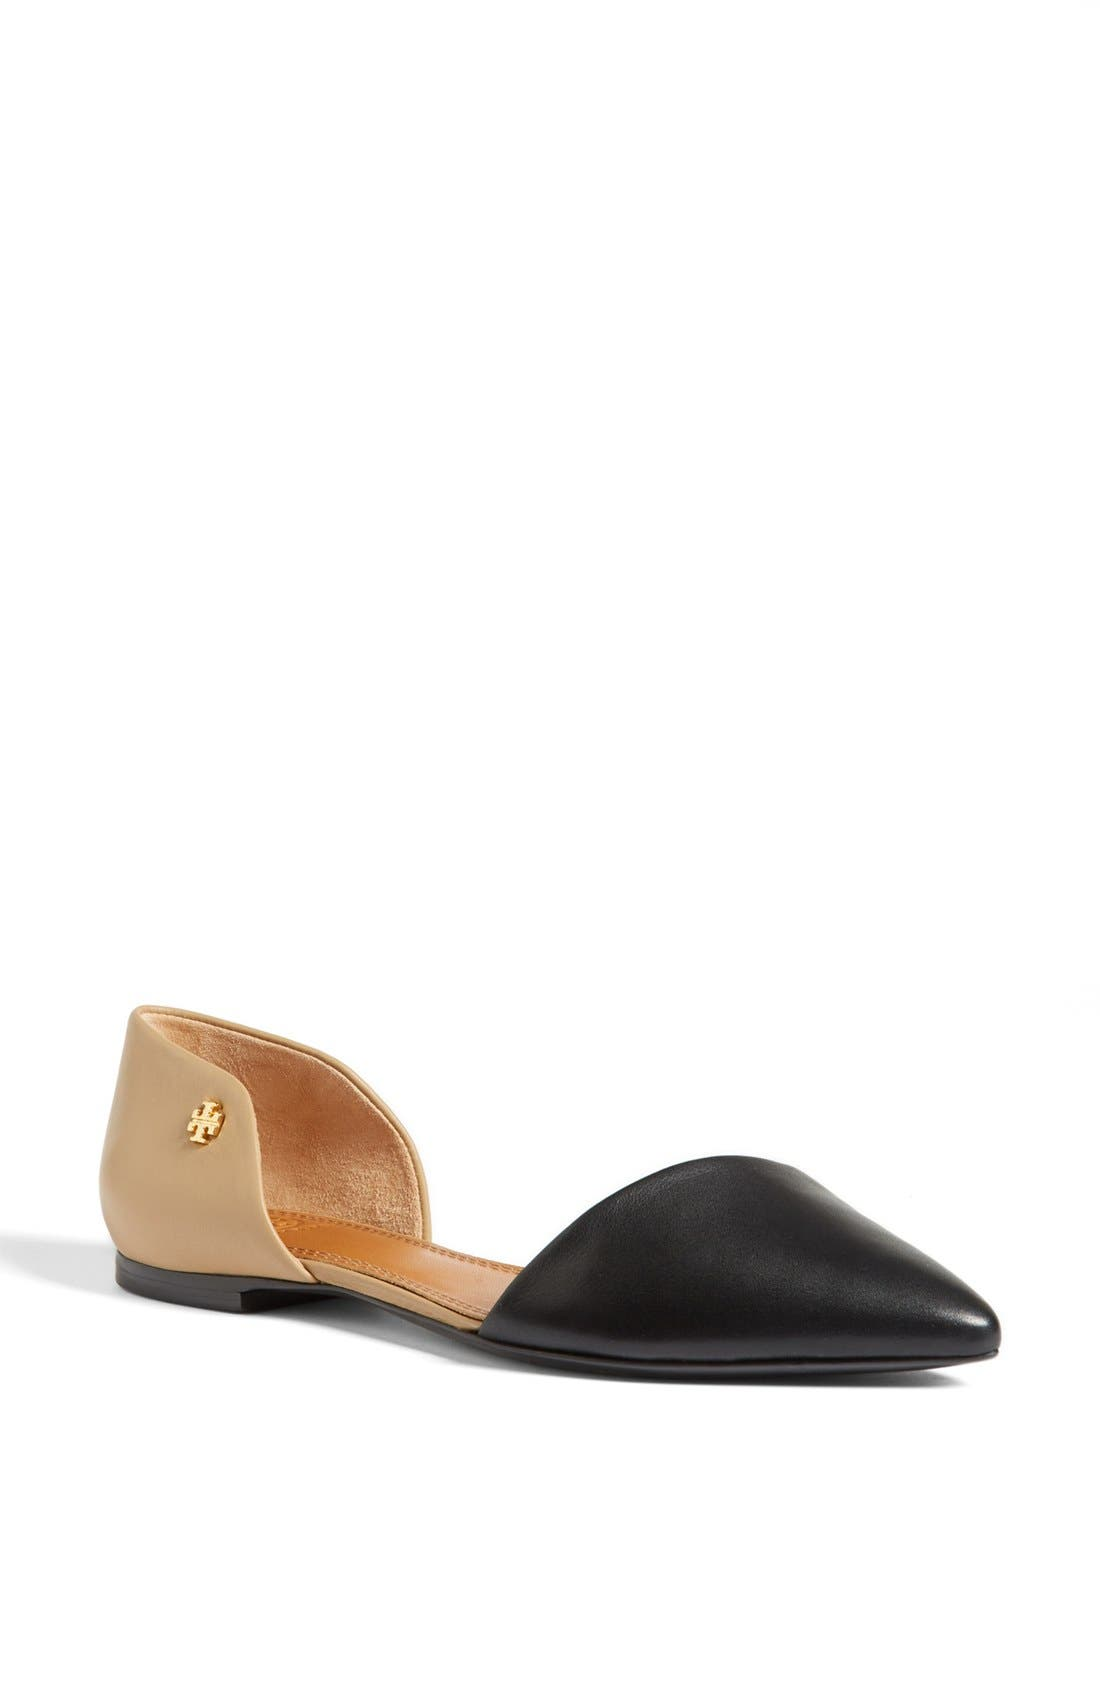 TORY BURCH,                             Leather Flat,                             Main thumbnail 1, color,                             008